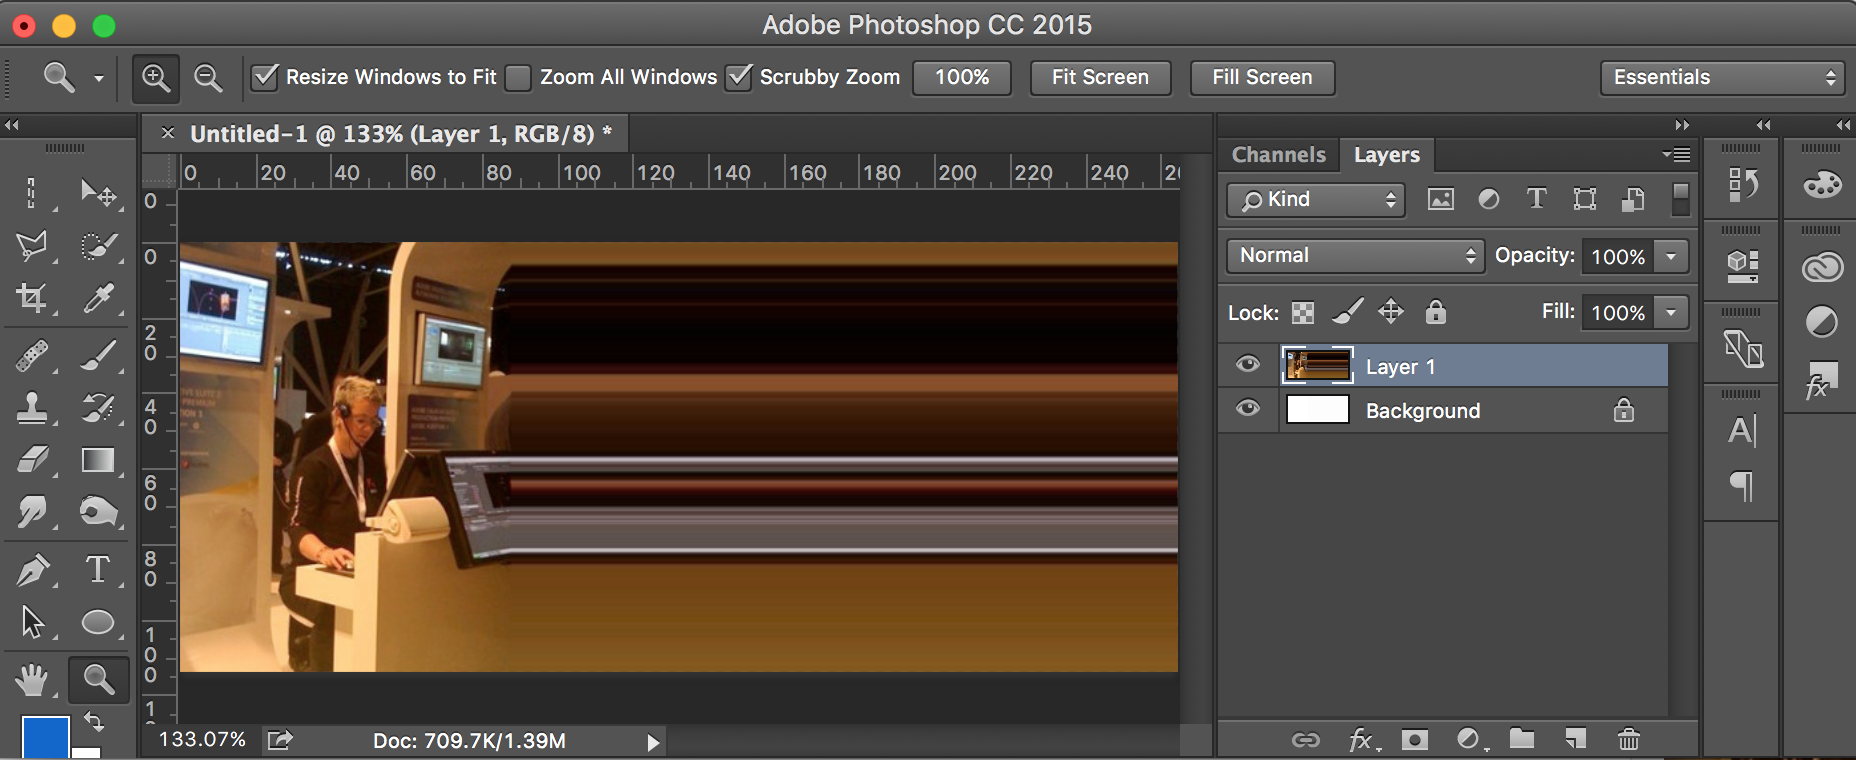 how to become a photoshop expert